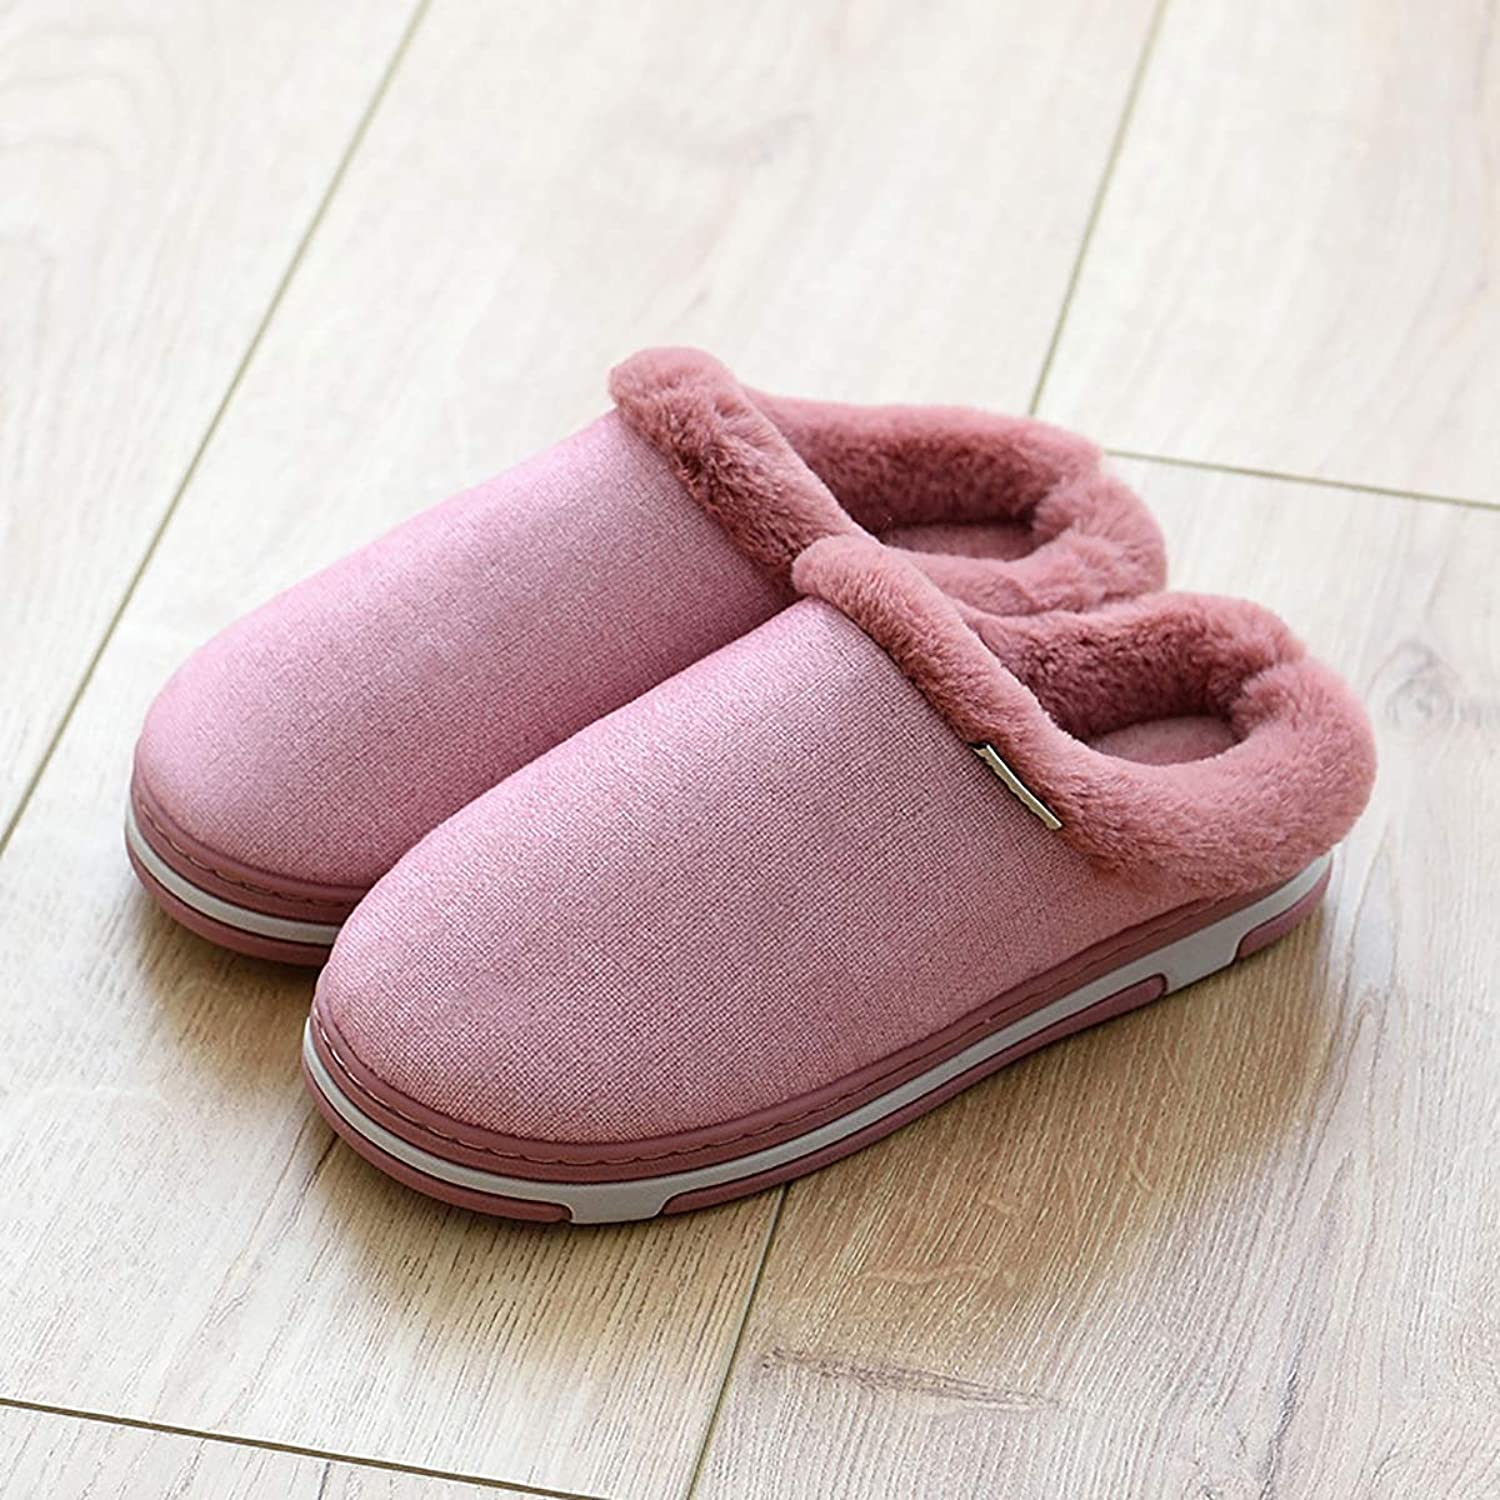 Thicken Plush Slippers Indoor Warm Non-Slip Cotton shoes Half-Pack Heel with Home shoes for Men and Women,Red,40 41